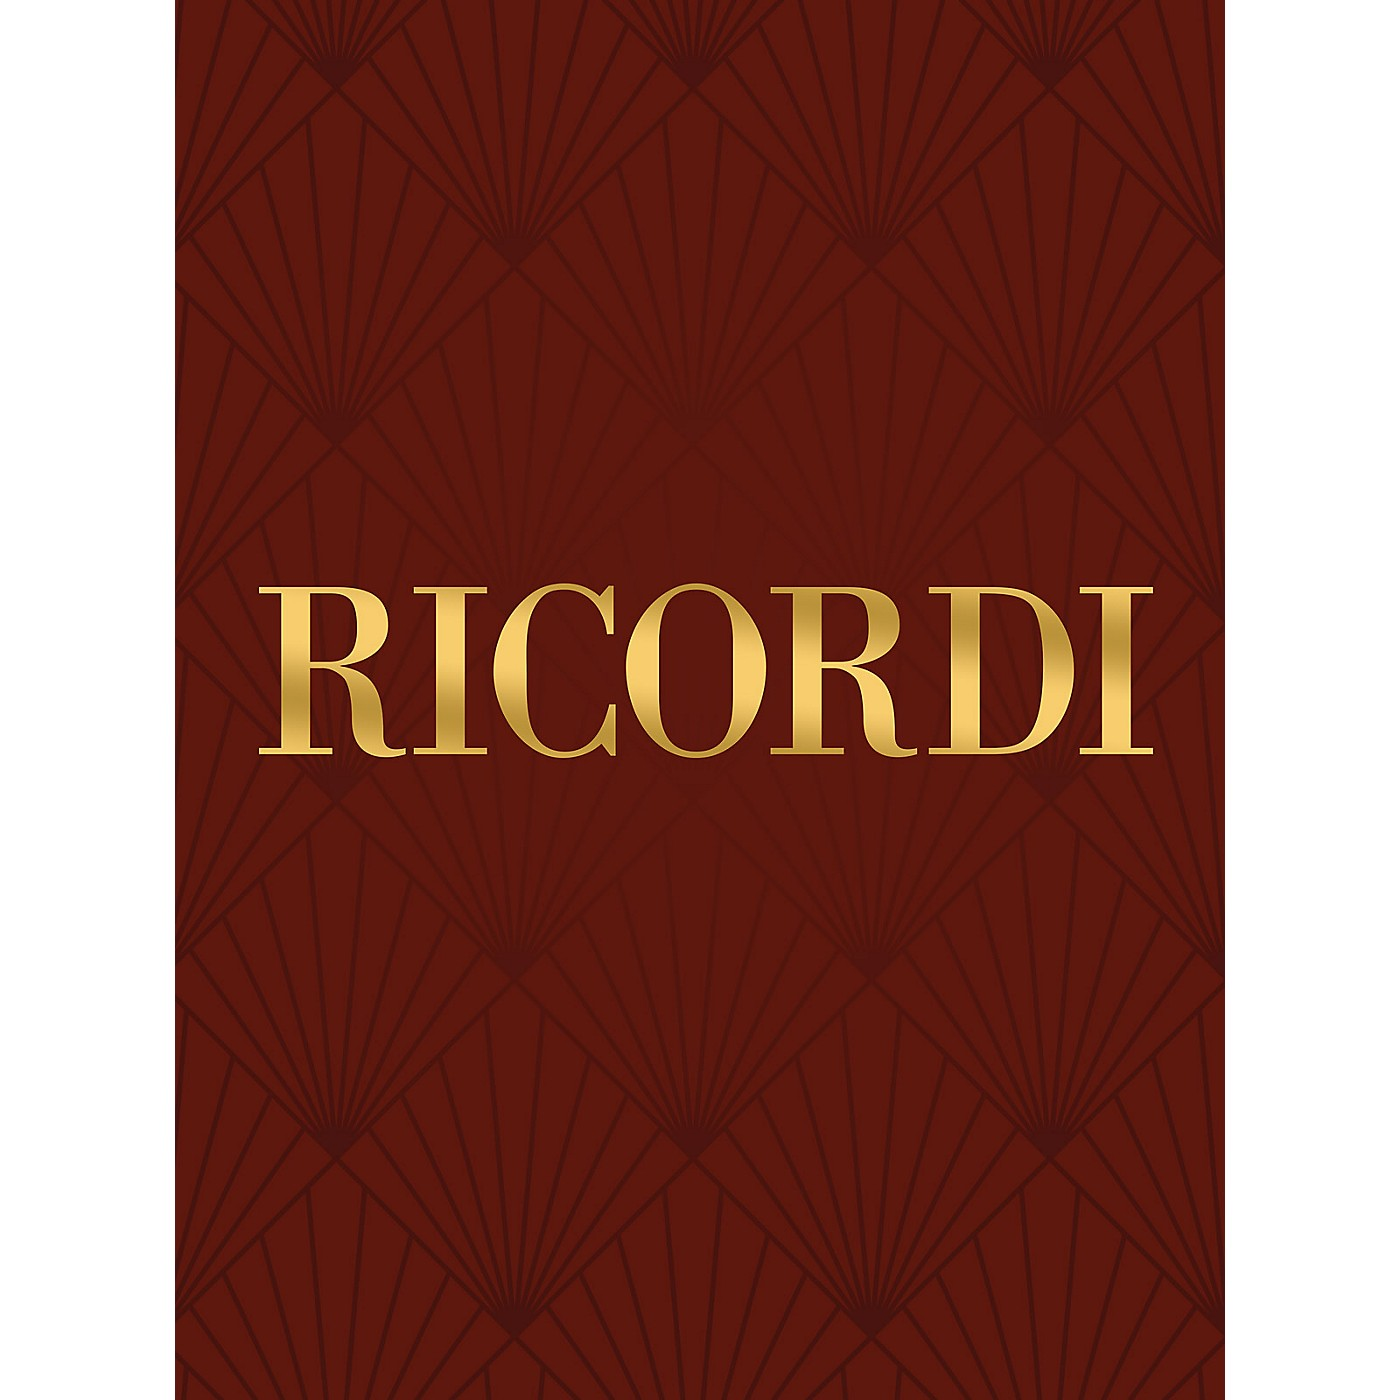 Ricordi Sinfonia in G Maj for Strings and Basso Continuo RV147 Study Score by Vivaldi Edited by Manfred Fechner thumbnail